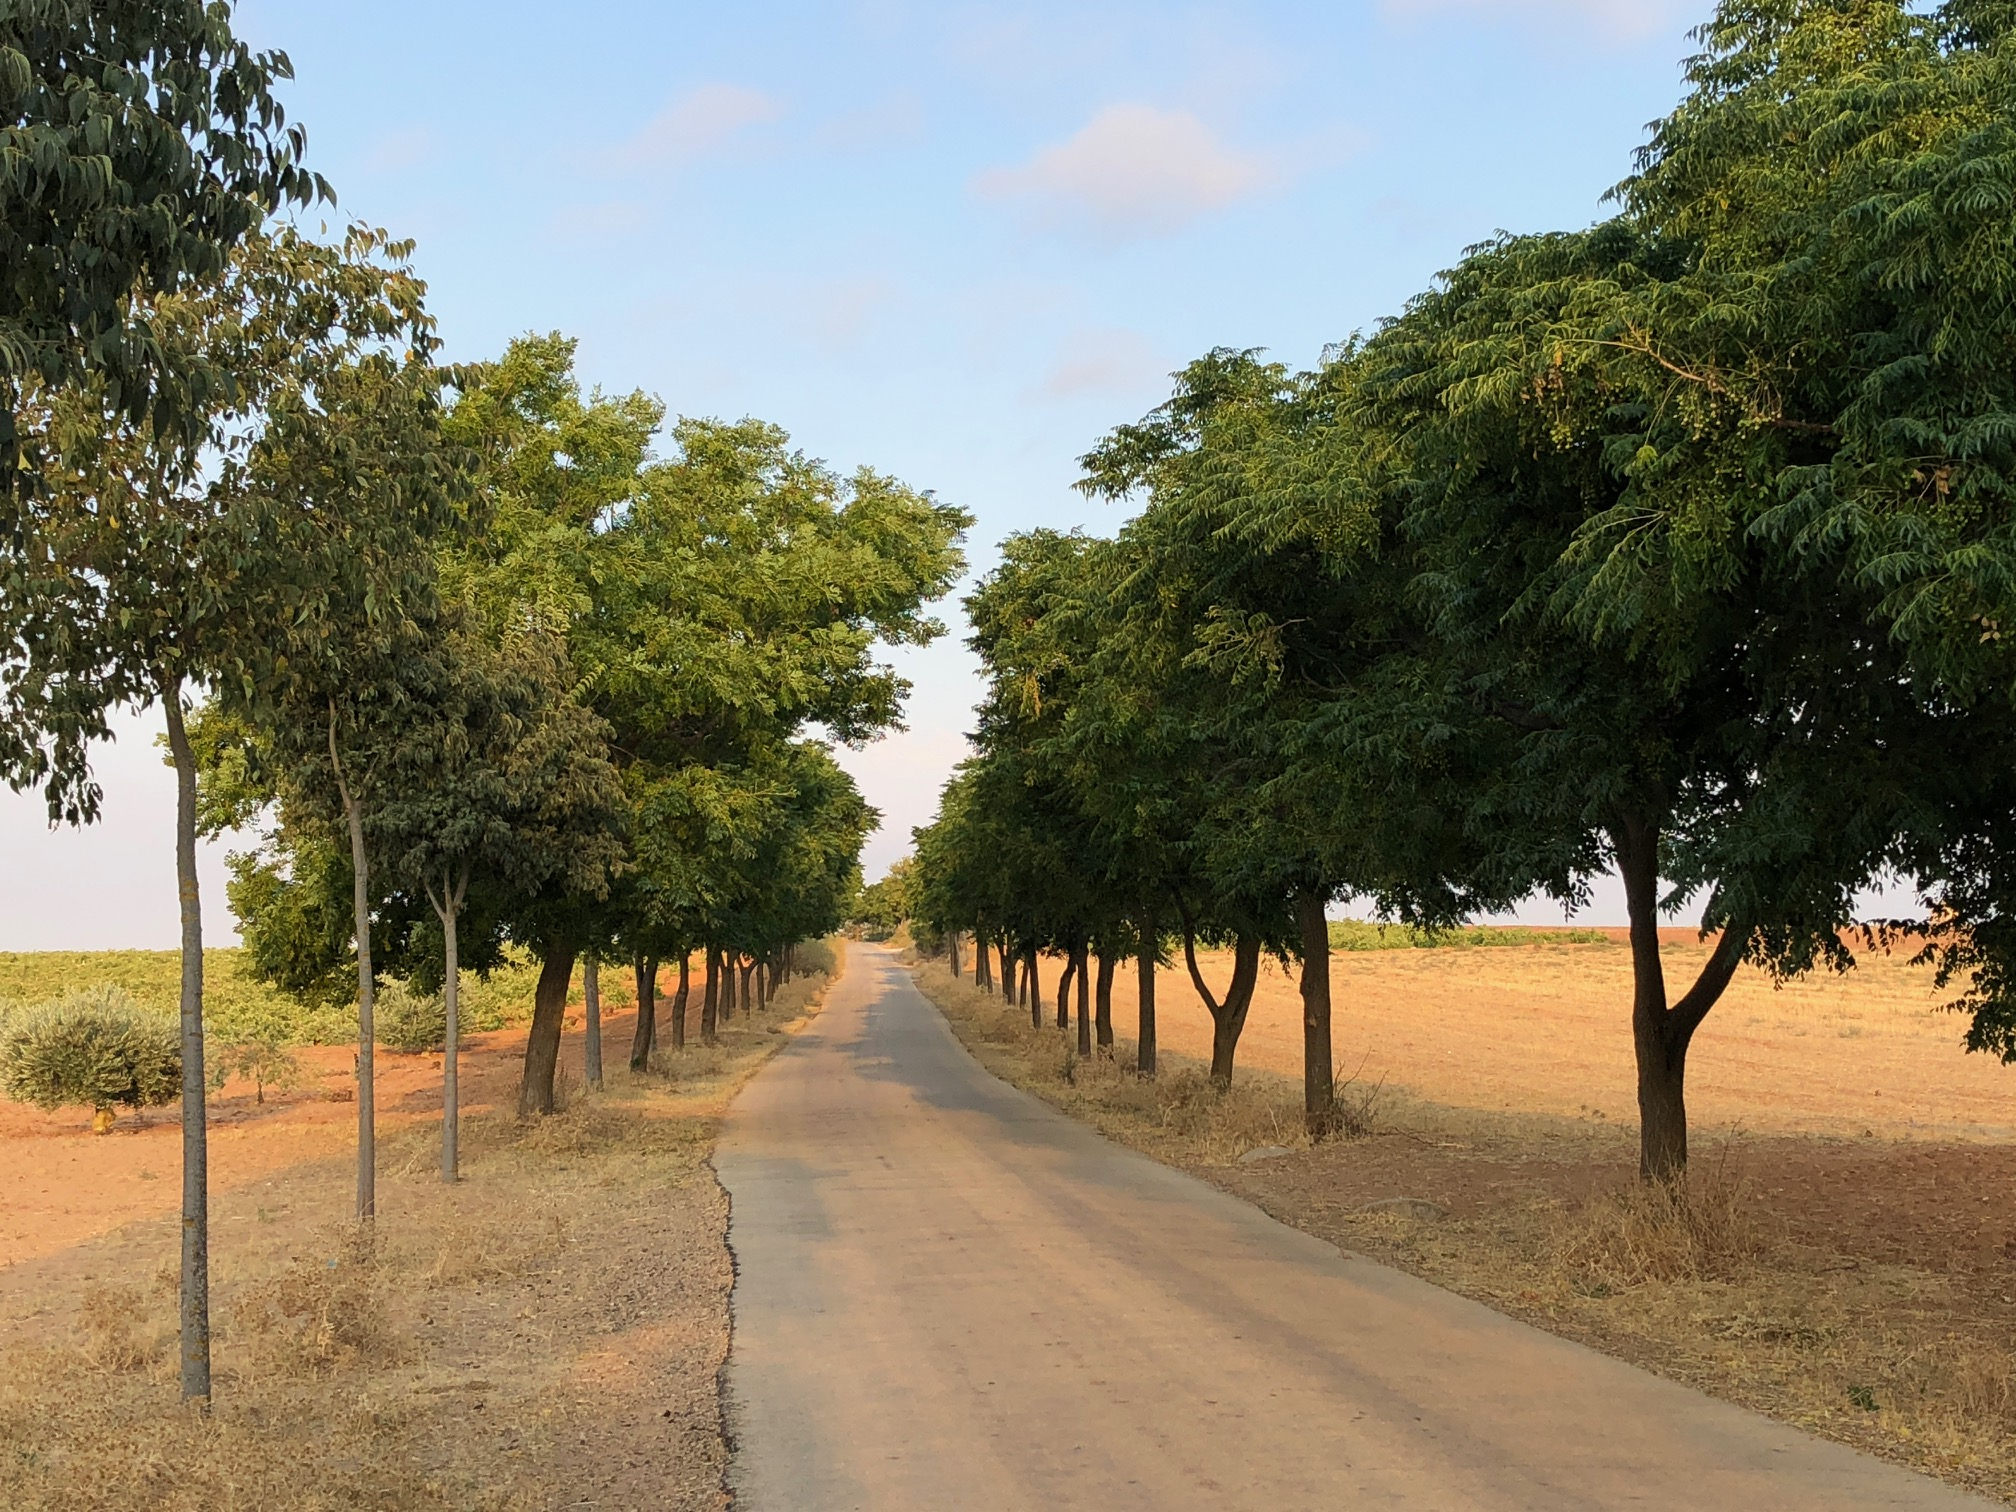 SYRANGA TREES LINING THE ENTRANCE TO EL TOBOSO, STOPPED HERE FOR COFFEE, 2 1/2 HOURS WALKING